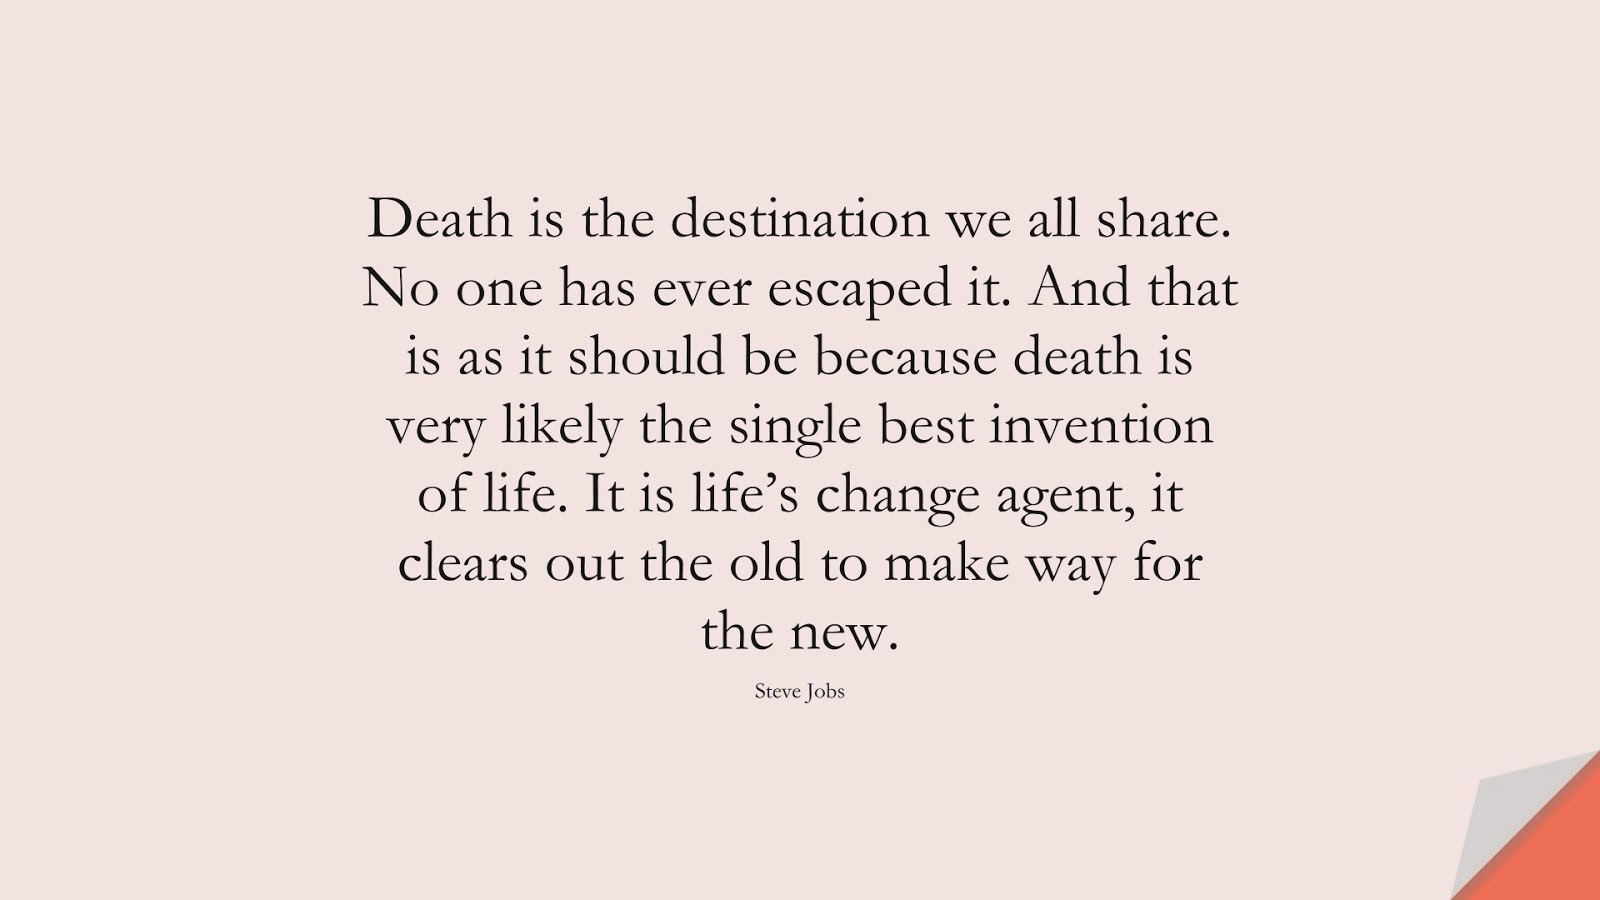 Death is the destination we all share. No one has ever escaped it. And that is as it should be because death is very likely the single best invention of life. It is life's change agent, it clears out the old to make way for the new. (Steve Jobs);  #SteveJobsQuotes